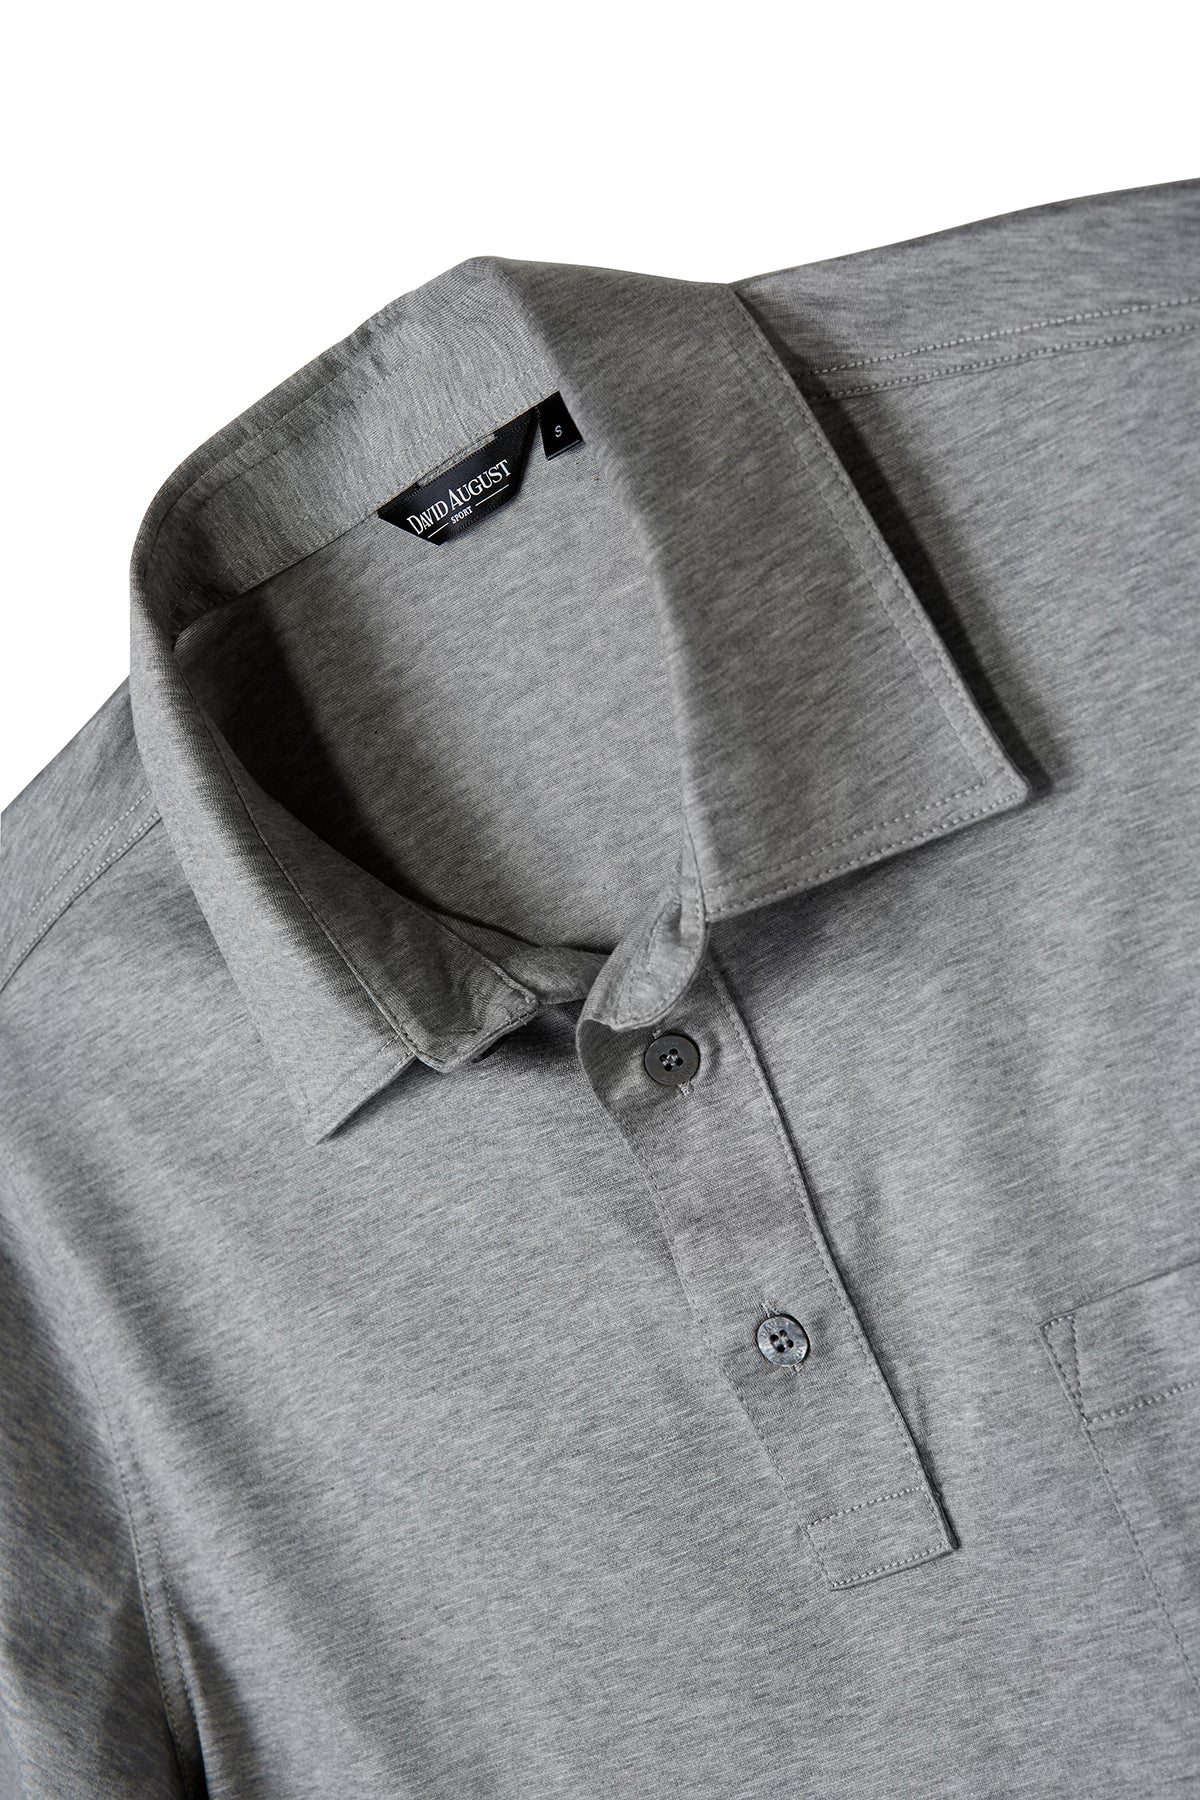 David August Heather Grey Polo